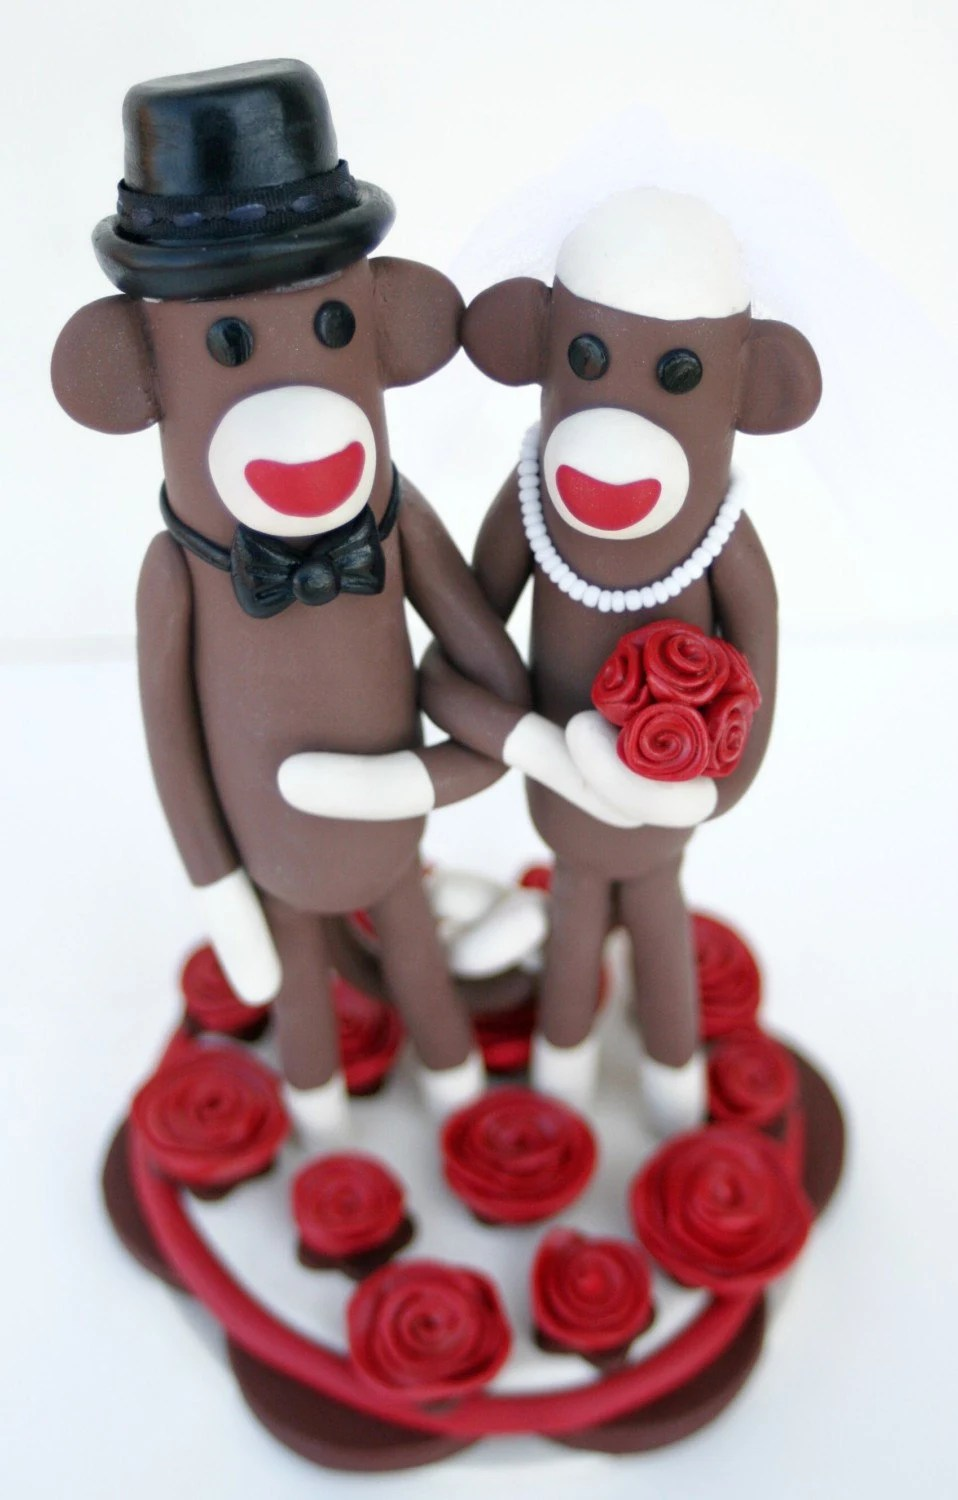 Sock Monkey Wedding Cake Topper Custom Made in Your Colors 6 inches tall